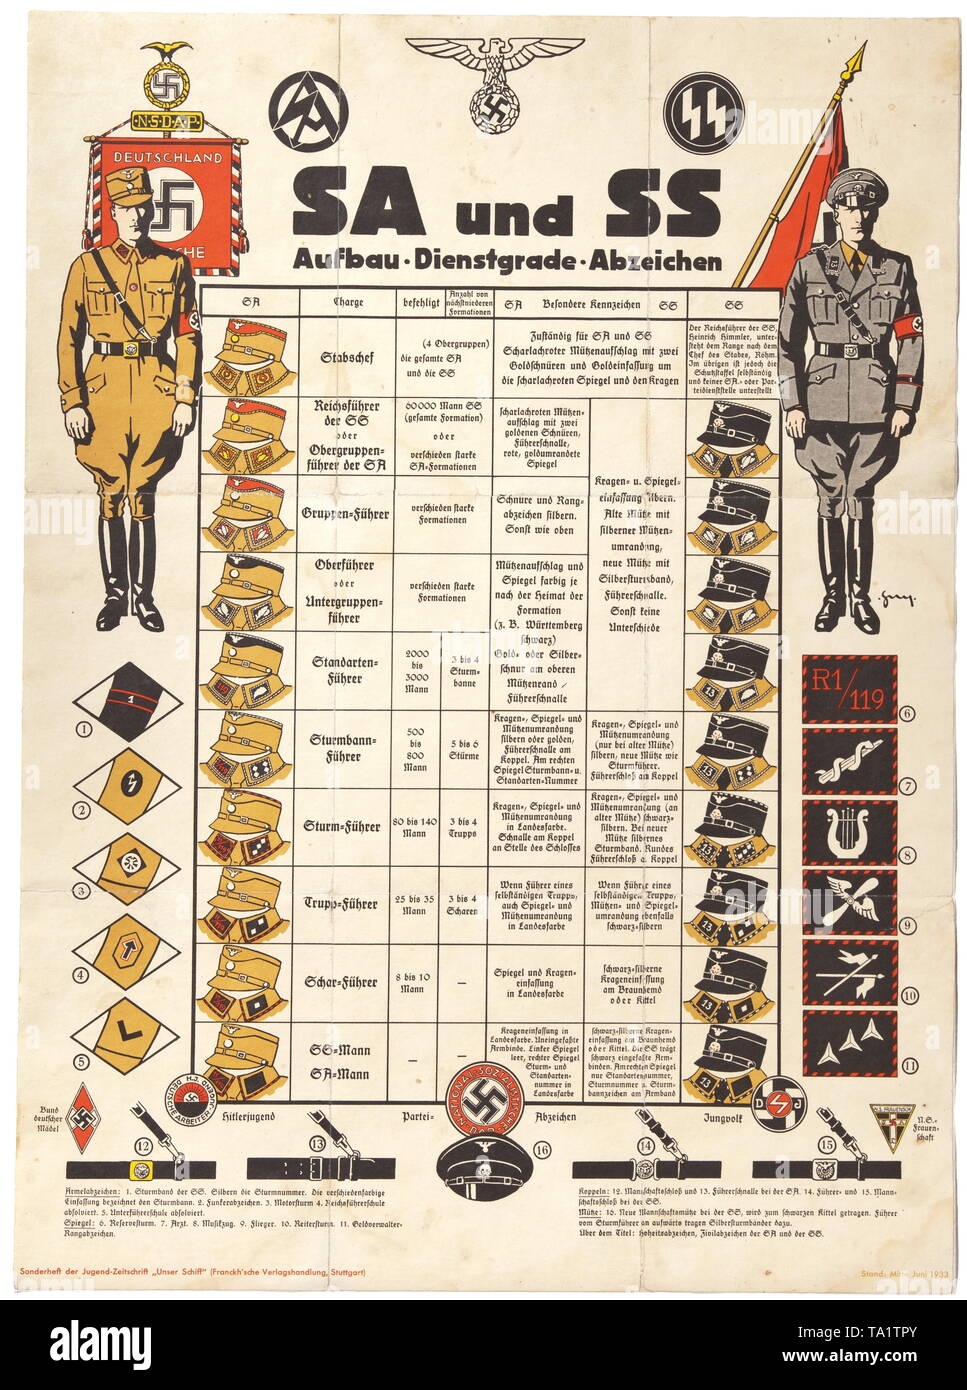 A wall poster 'SA und SS - Aufbau*Dienstgrade*Abzeichen' 'retrieved: mid-June 1933' historic, historical, 20th century, Editorial-Use-Only - Stock Image